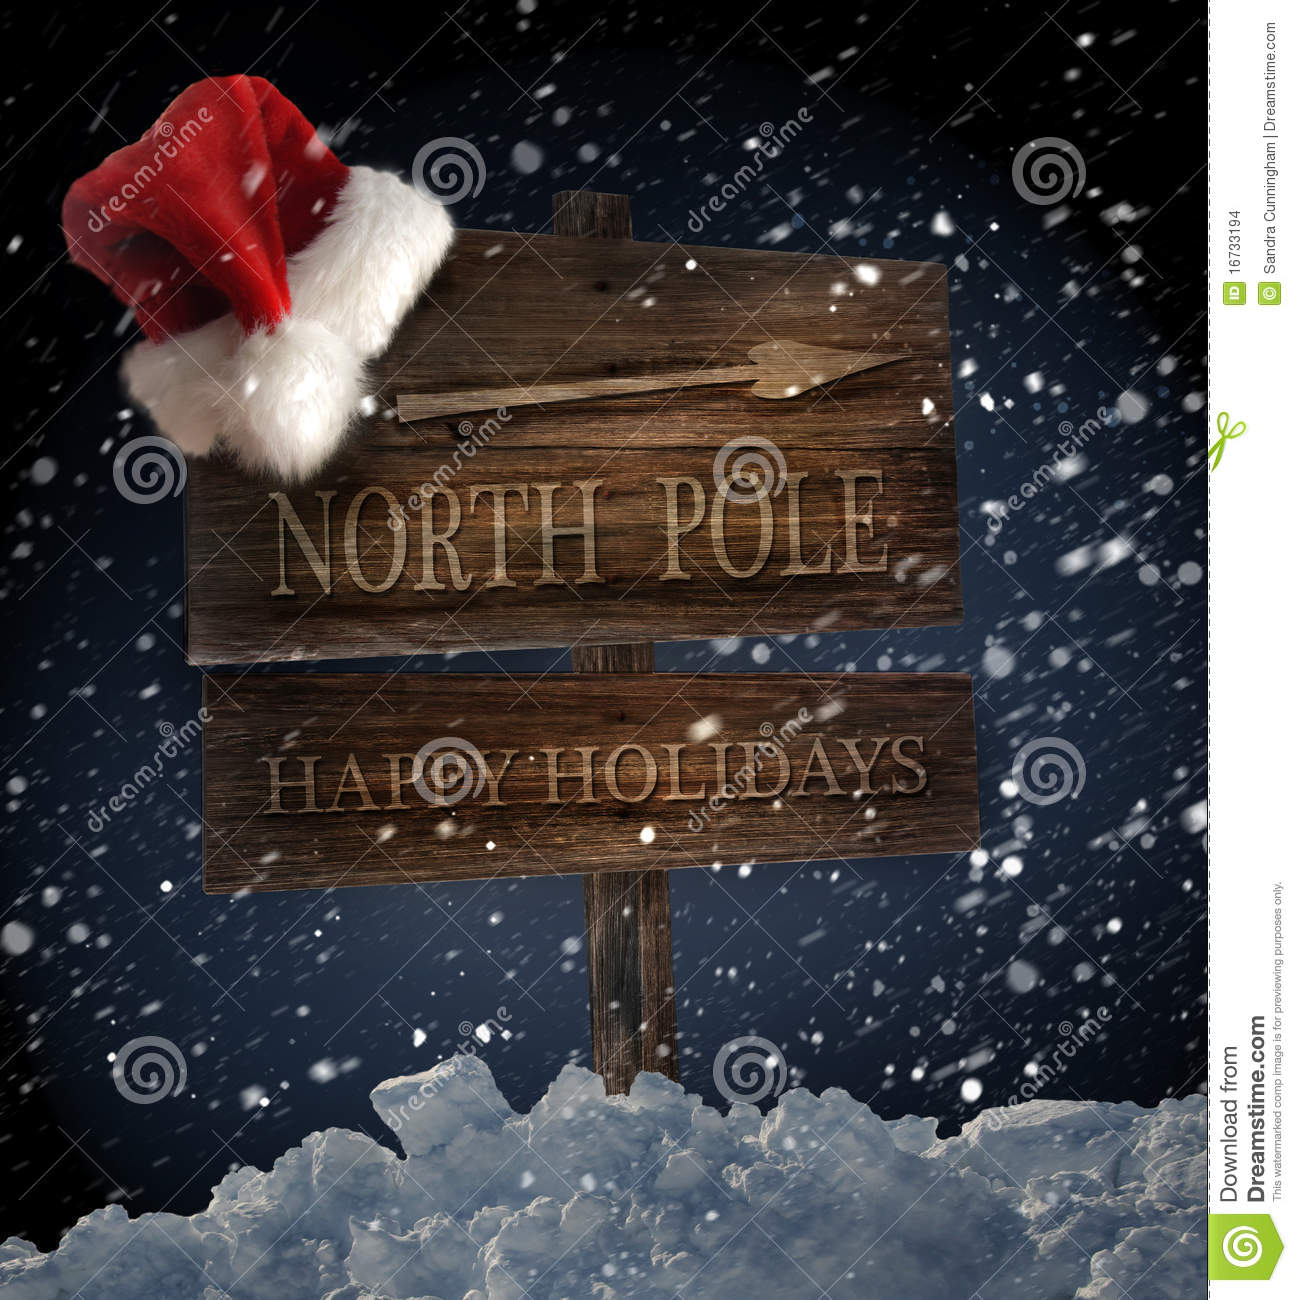 Wooden sign with Santa hat